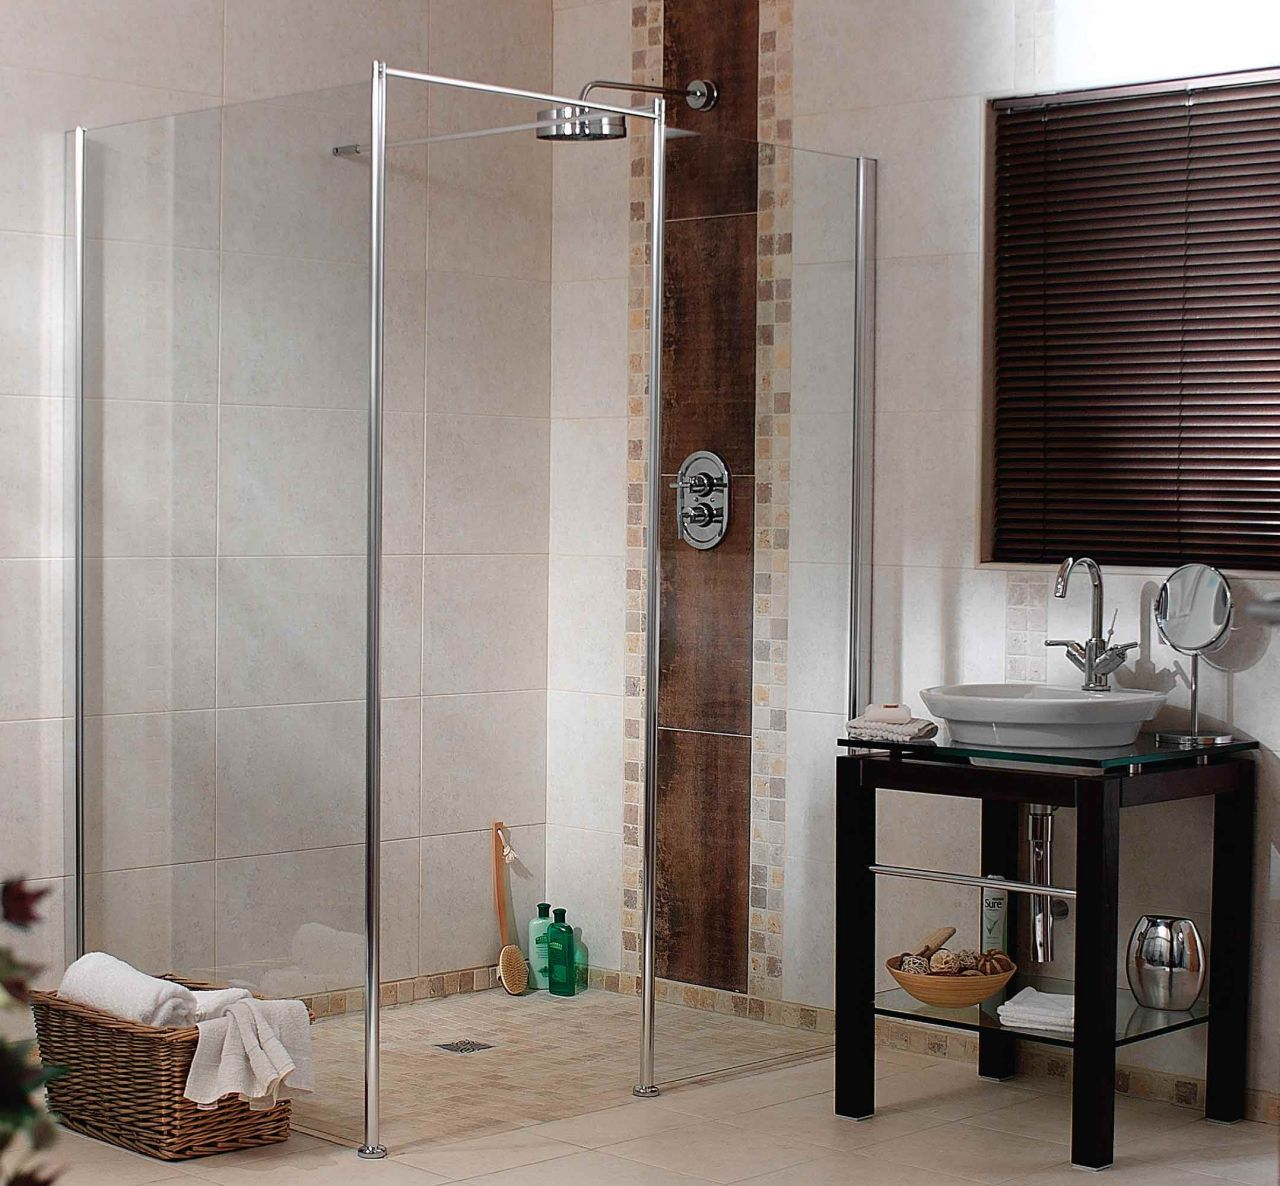 5 Shower Base Ideas For A Custom Home Or Remodeling Project